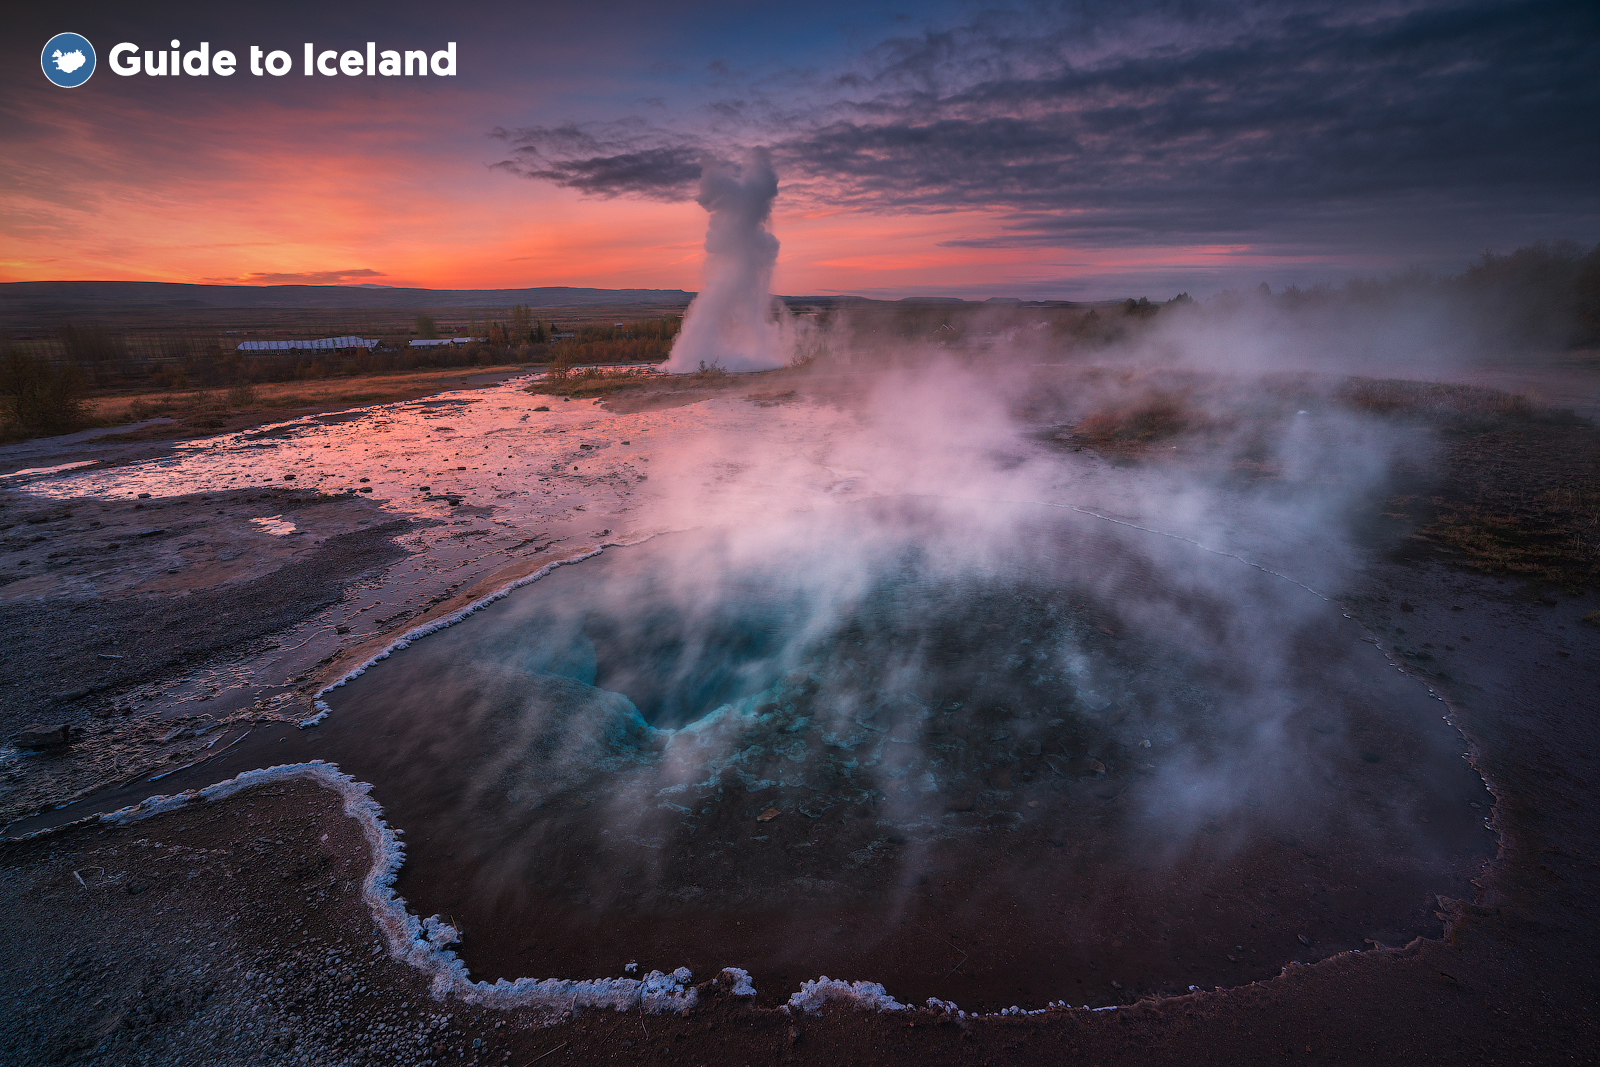 Spend three days travelling to Iceland's most popular attractions like the ones on the Golden Circle route, with a winter self-drive.